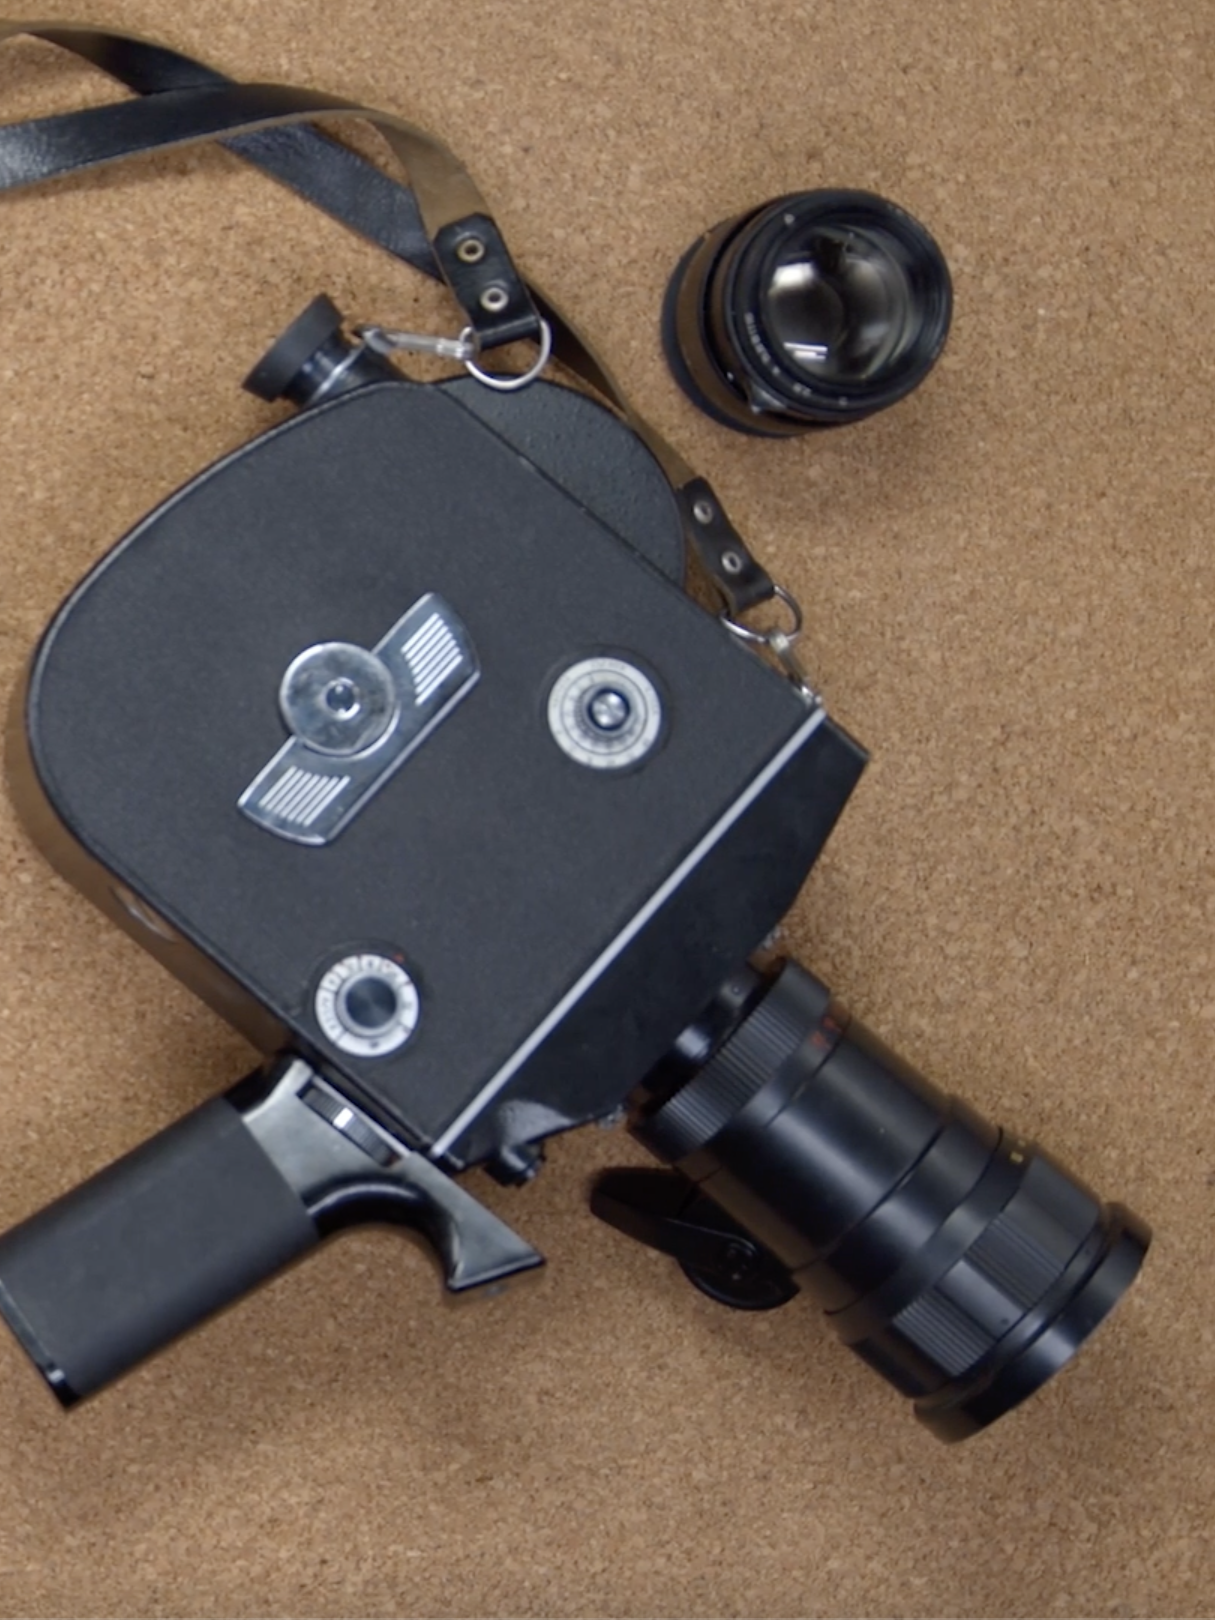 A retor camera lies on a table top with a film clapper board to left out of shot